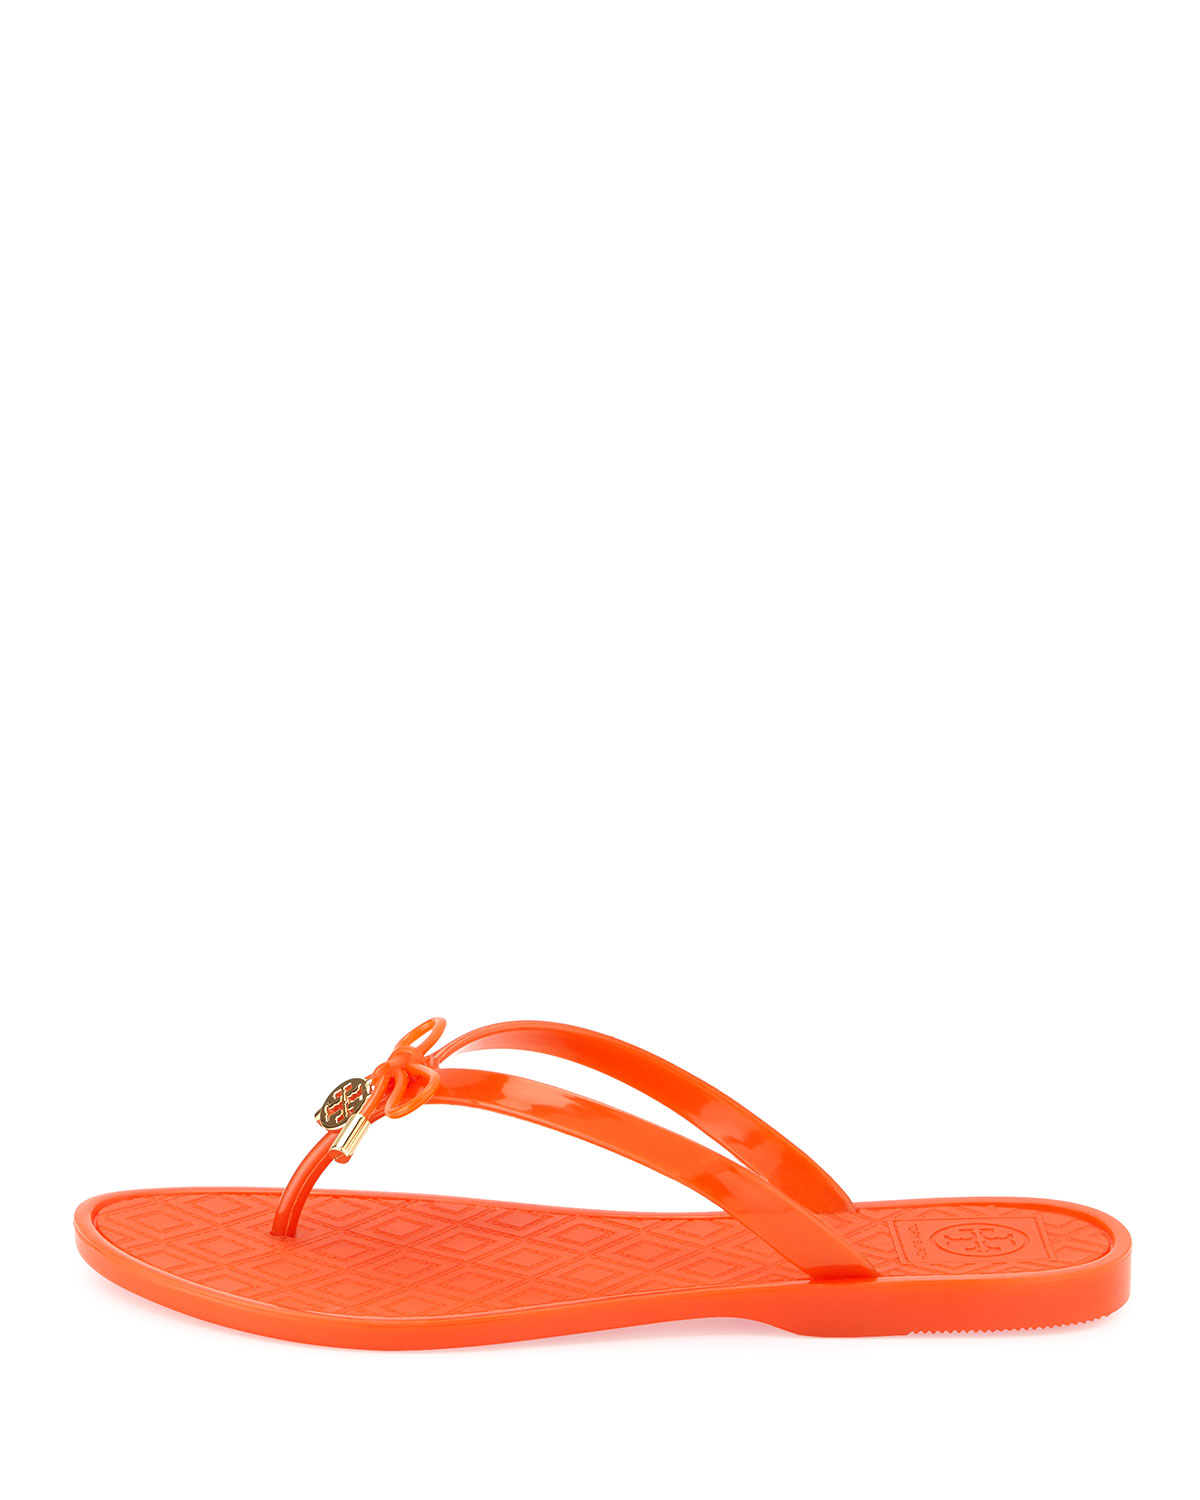 74bccb88bec22 Lyst - Tory Burch Jelly Bow Logo-Charm Thong Sandals in Orange